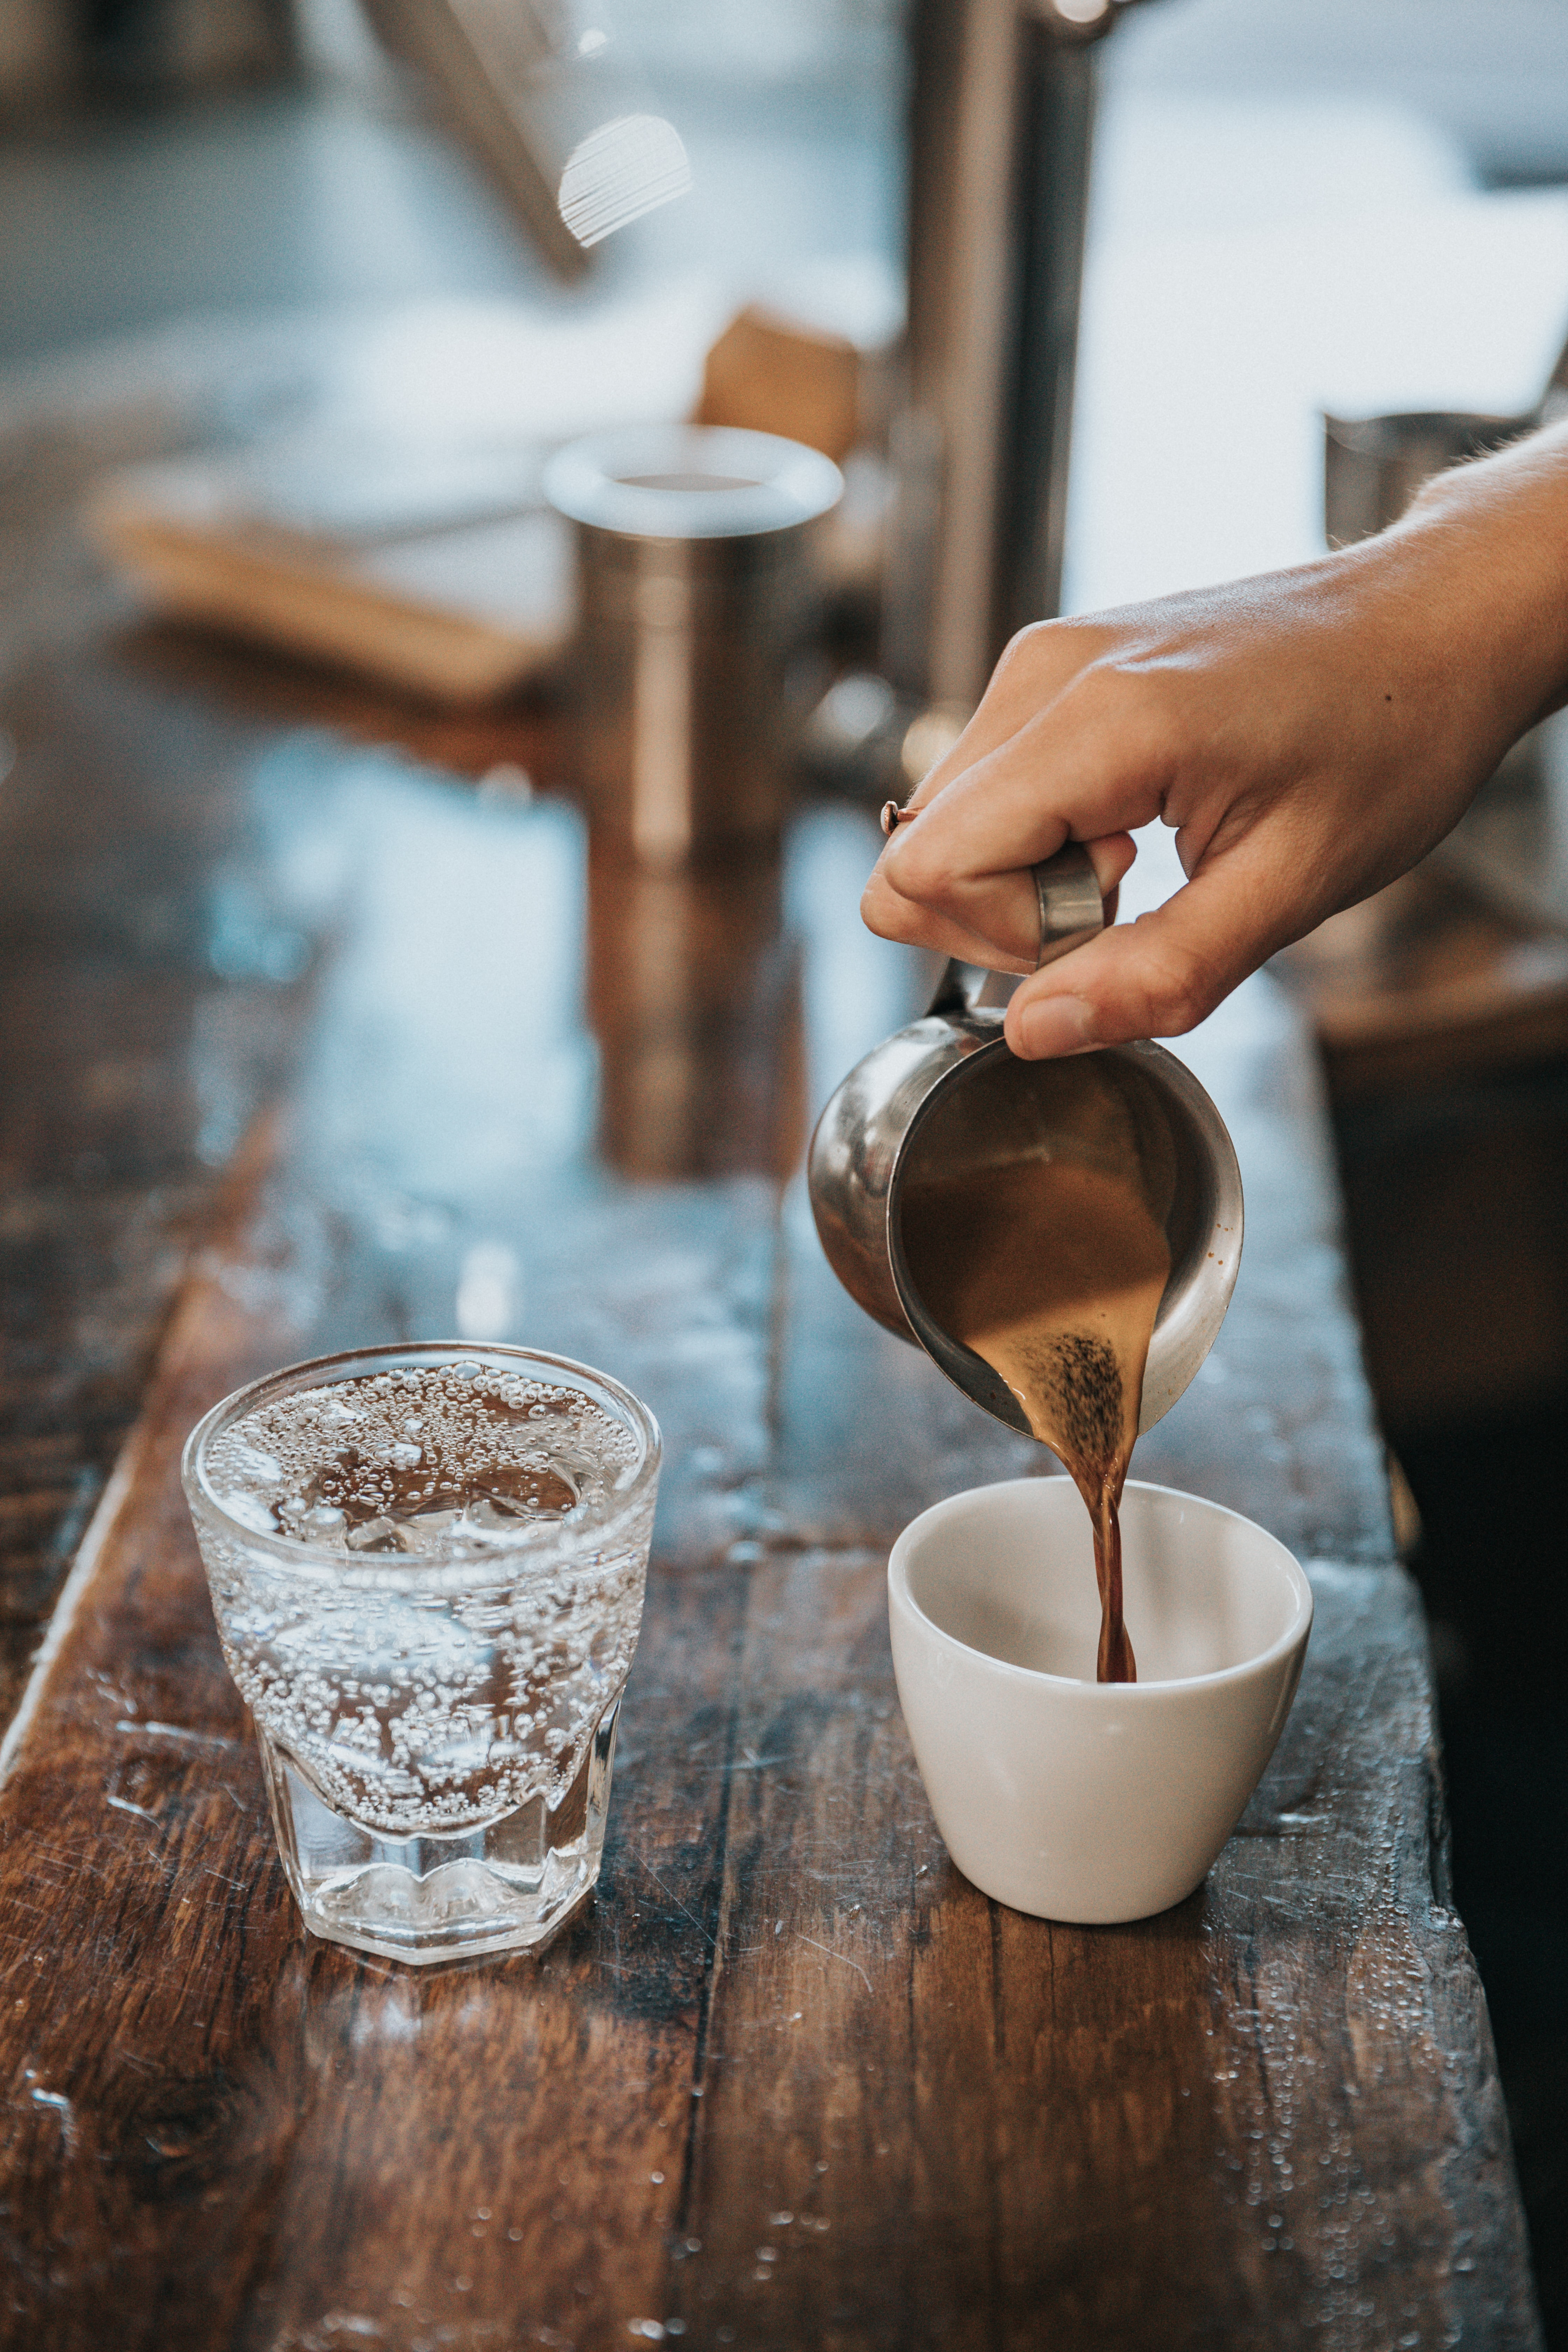 A person pouring coffee into a cup next to a glass of sparkling water